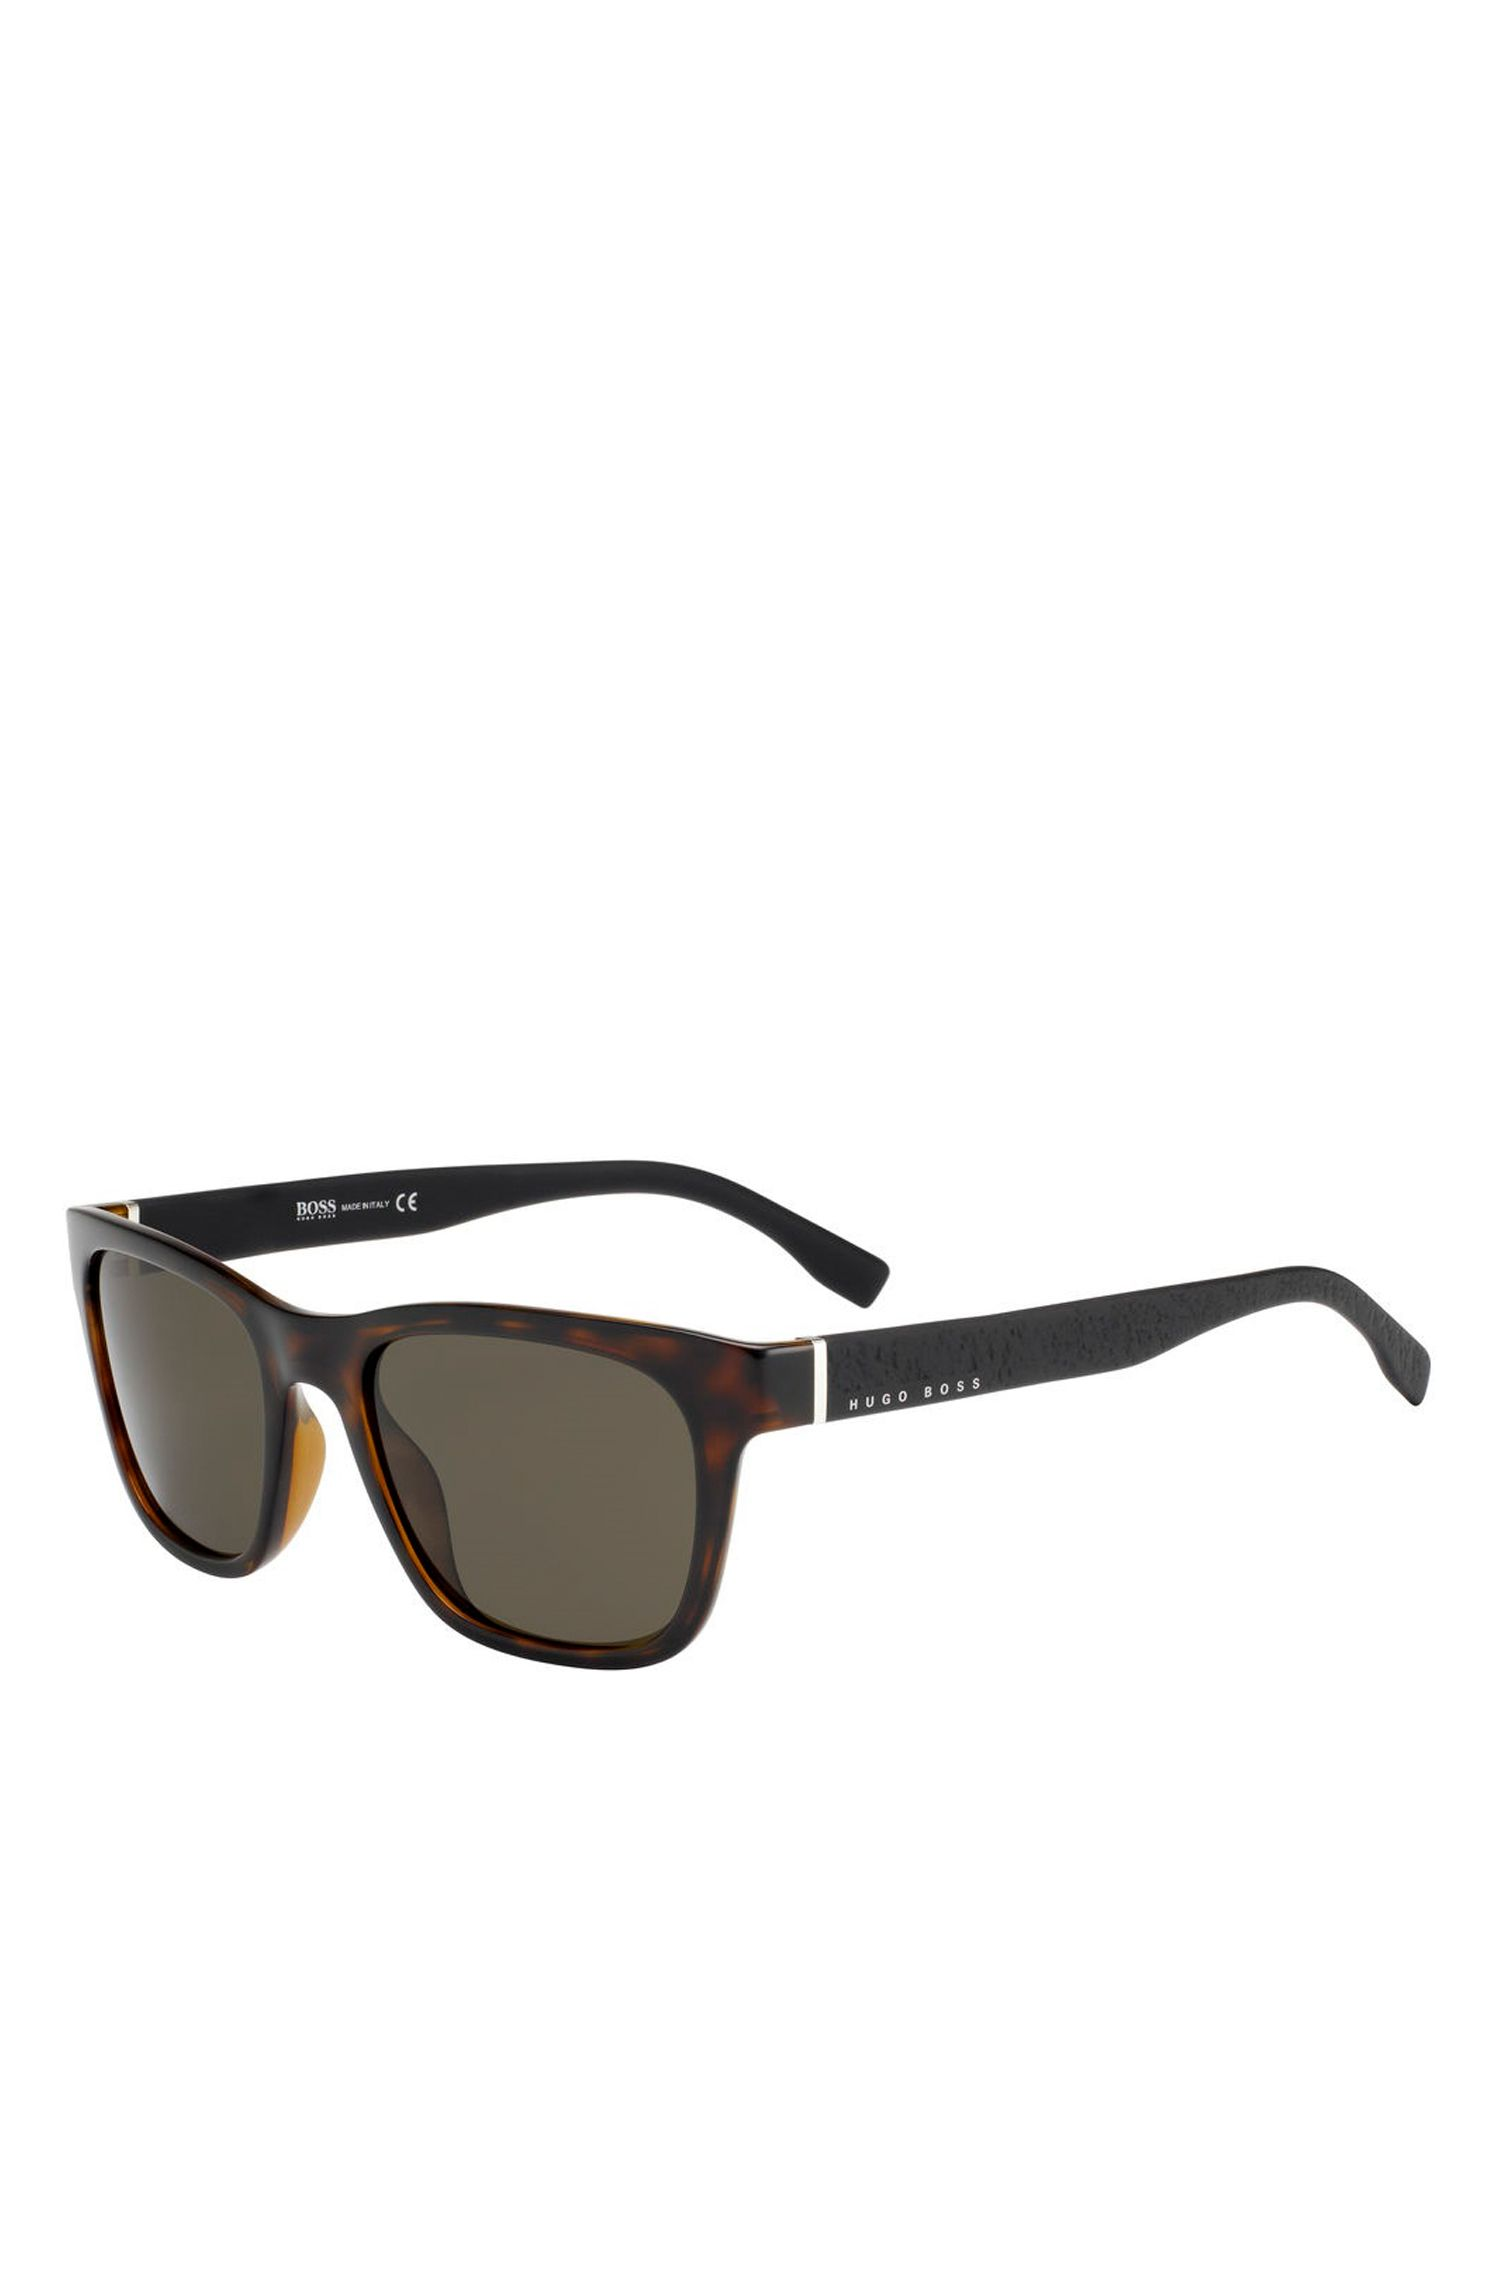 Black Lens Havana Square Sunglasses | BOSS 0830